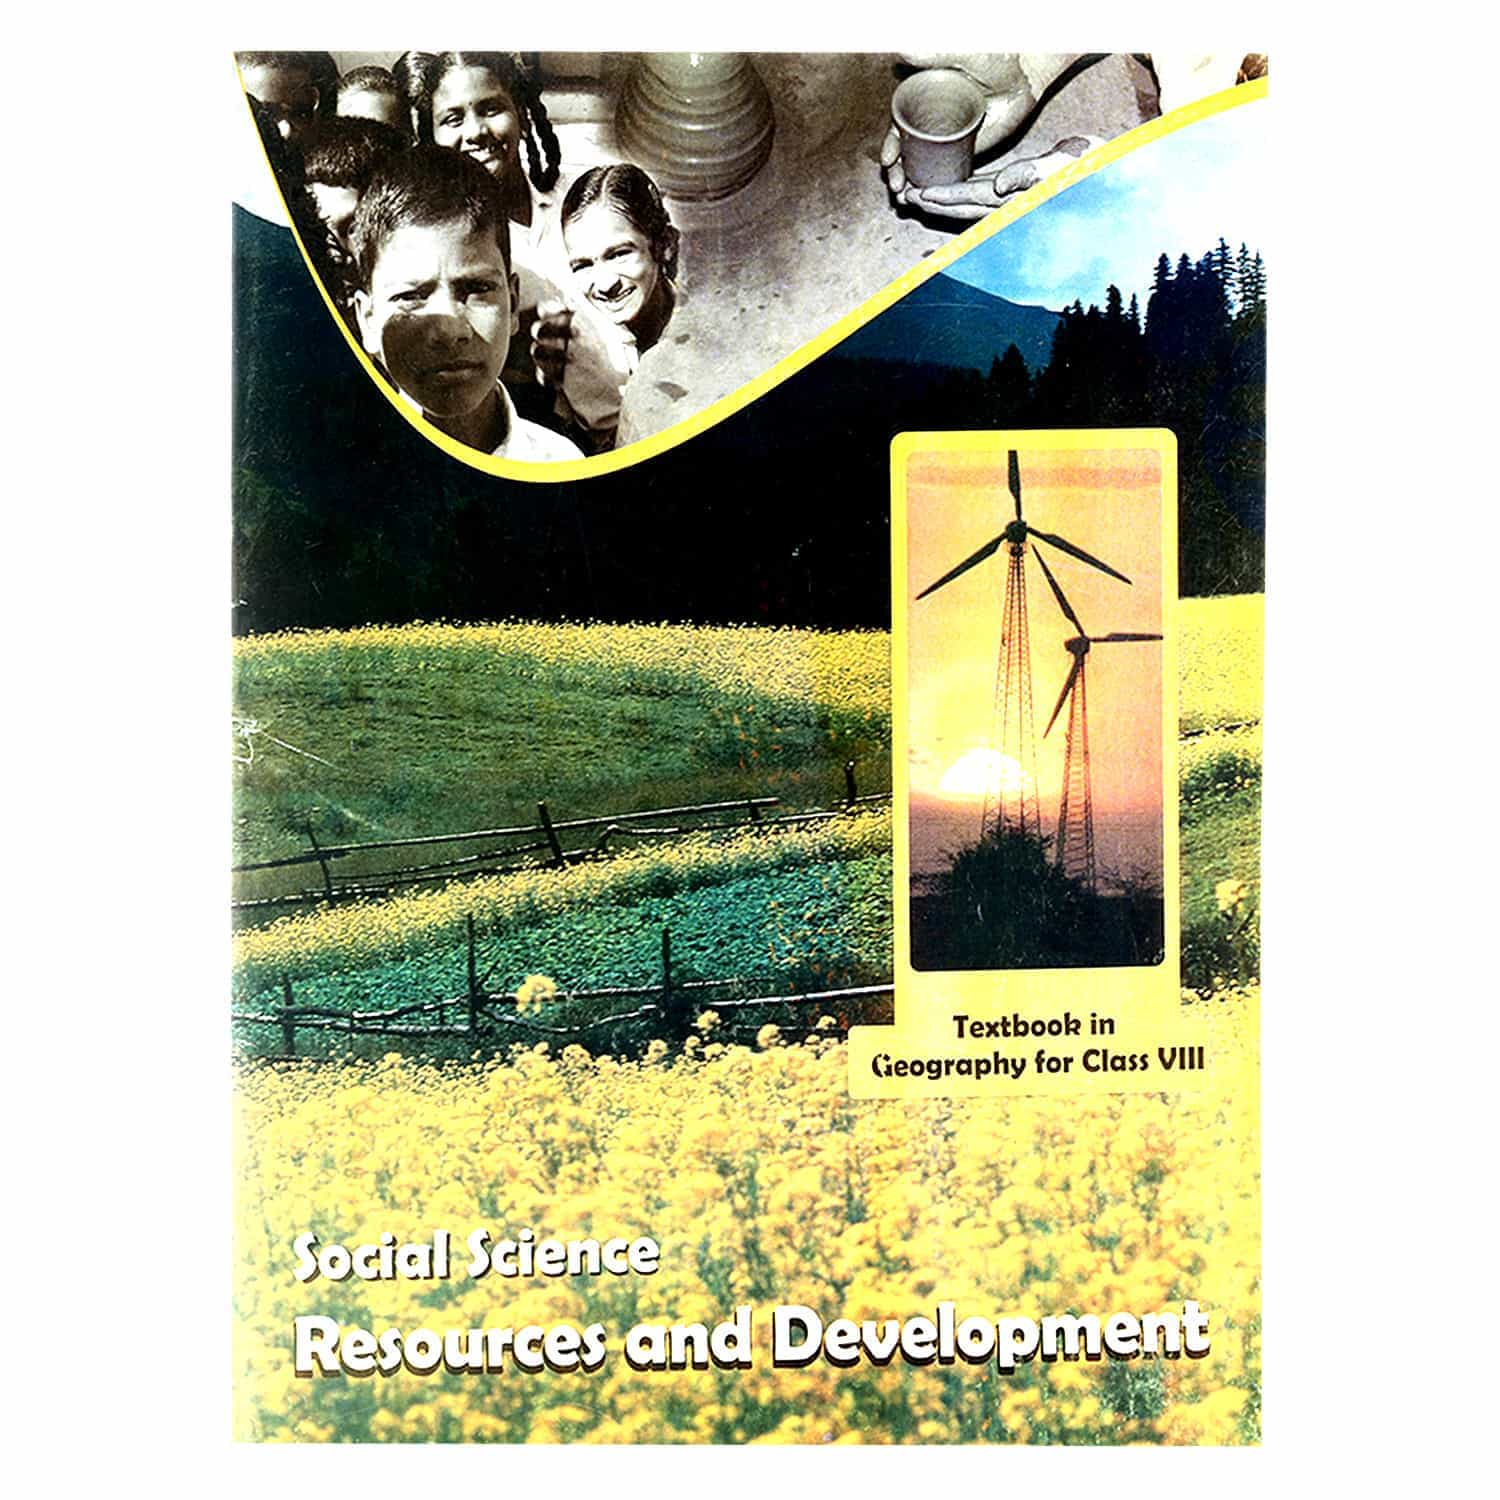 NCERT Geography Textbook - Class 8 - Resource and Development